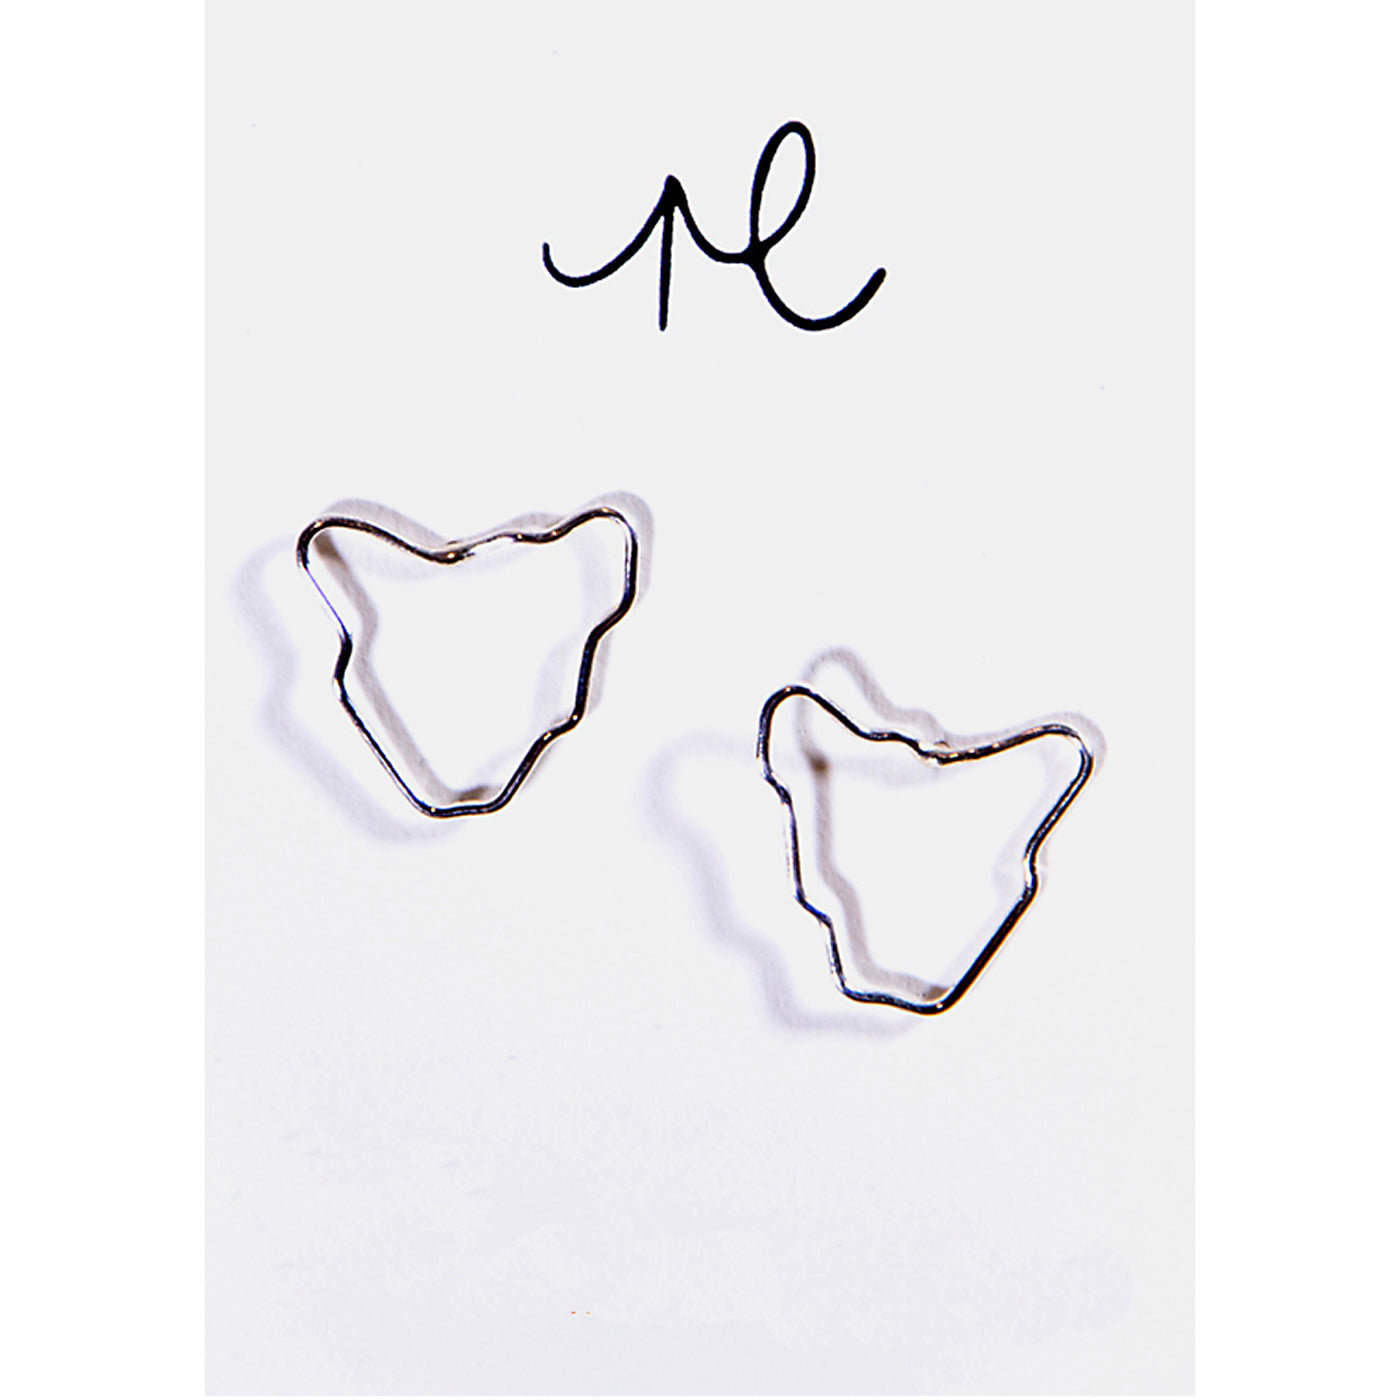 Ruth Evenhuis Designs - Tassie Stud Earrings